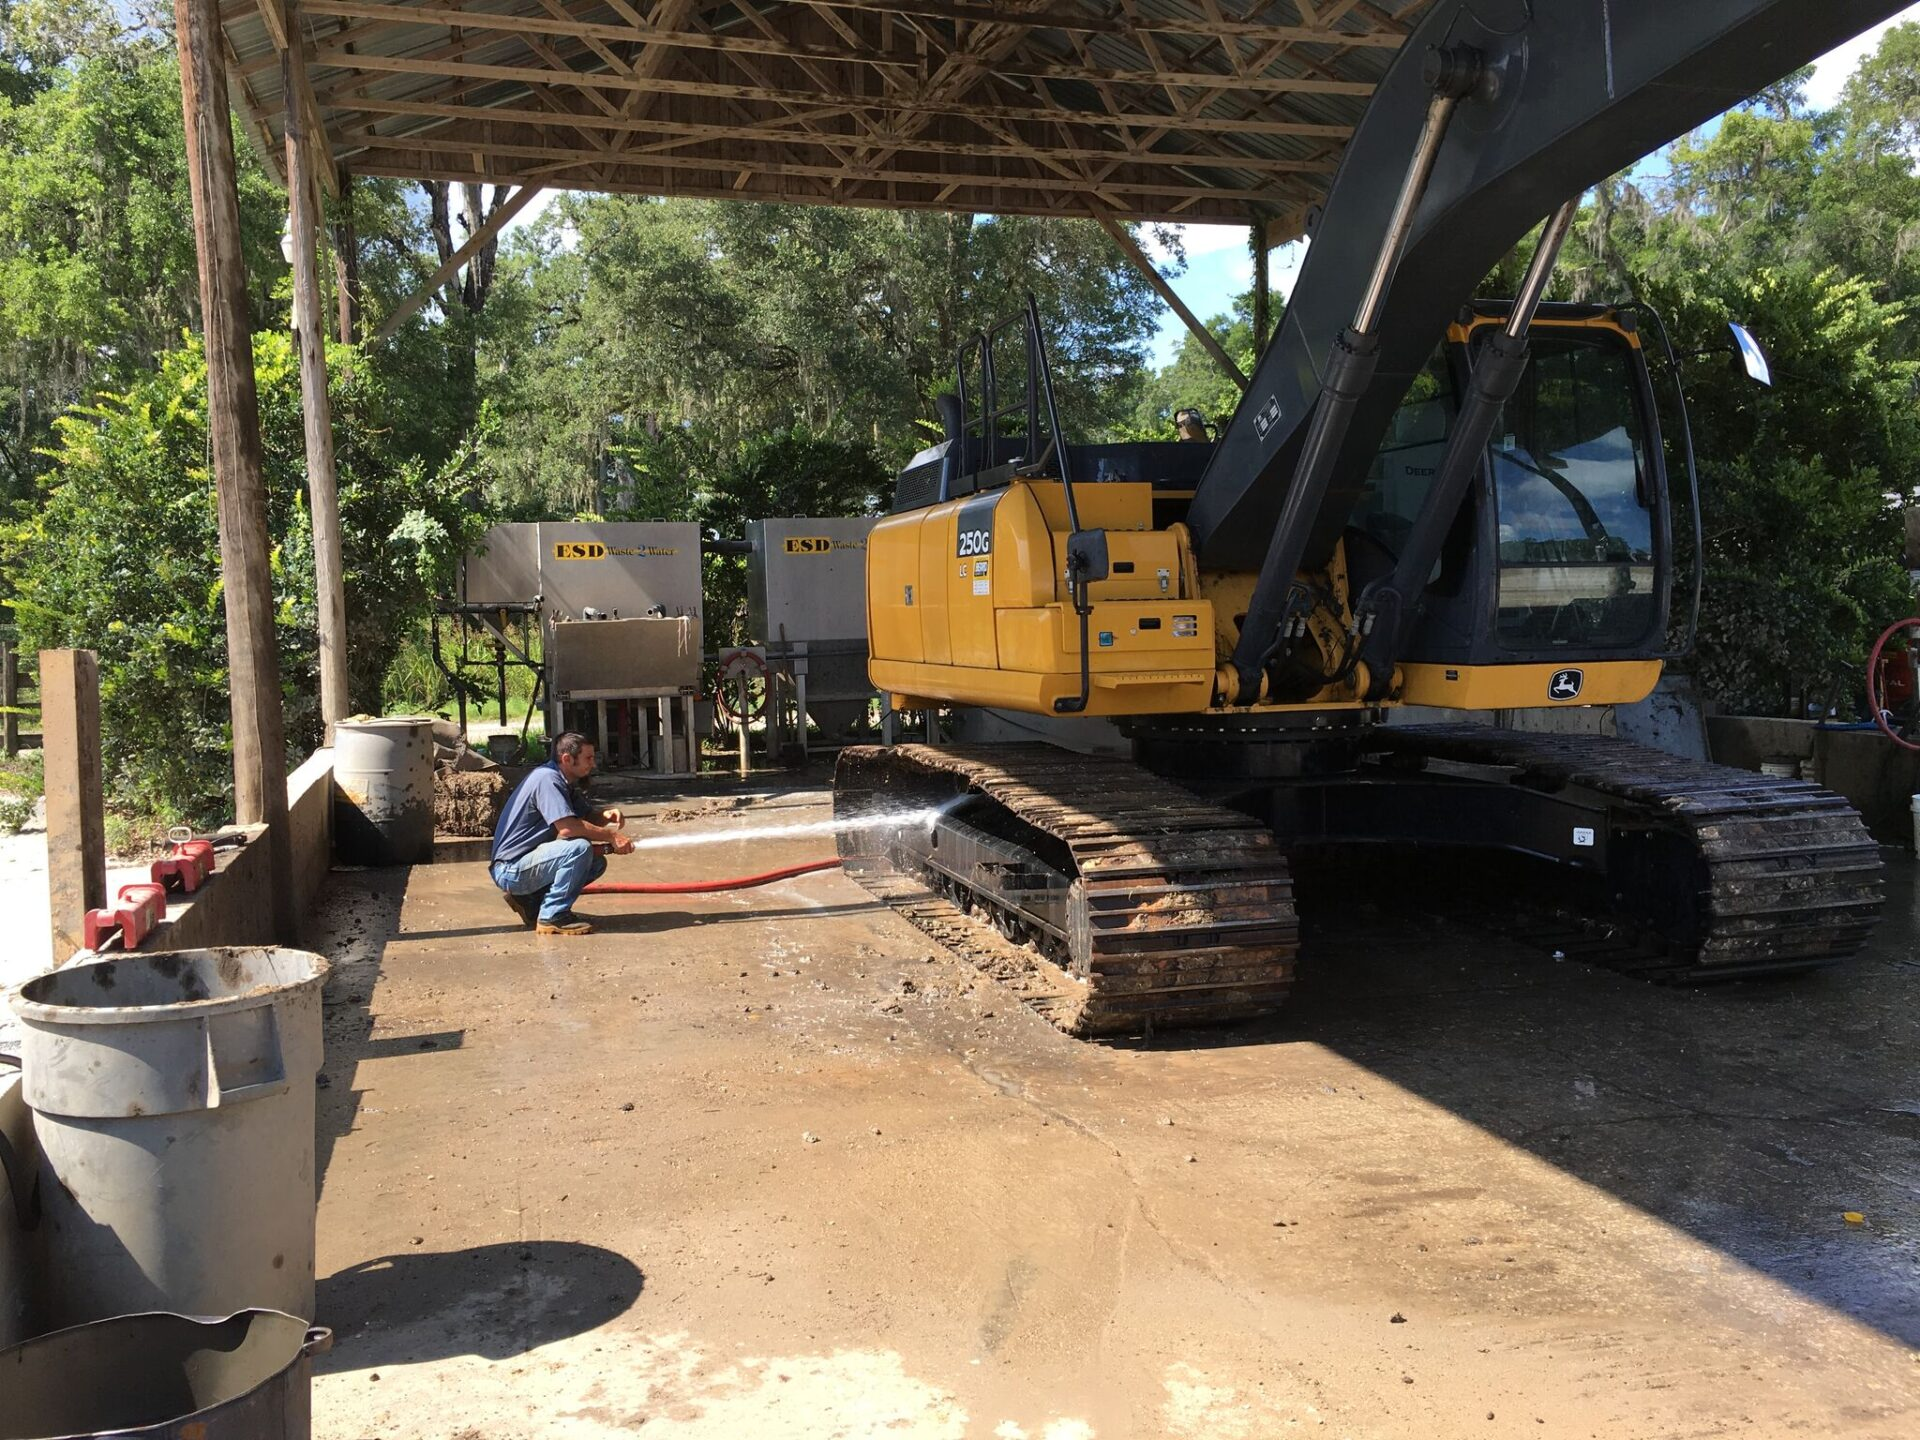 washing caterpillar digger with wastewater treatment